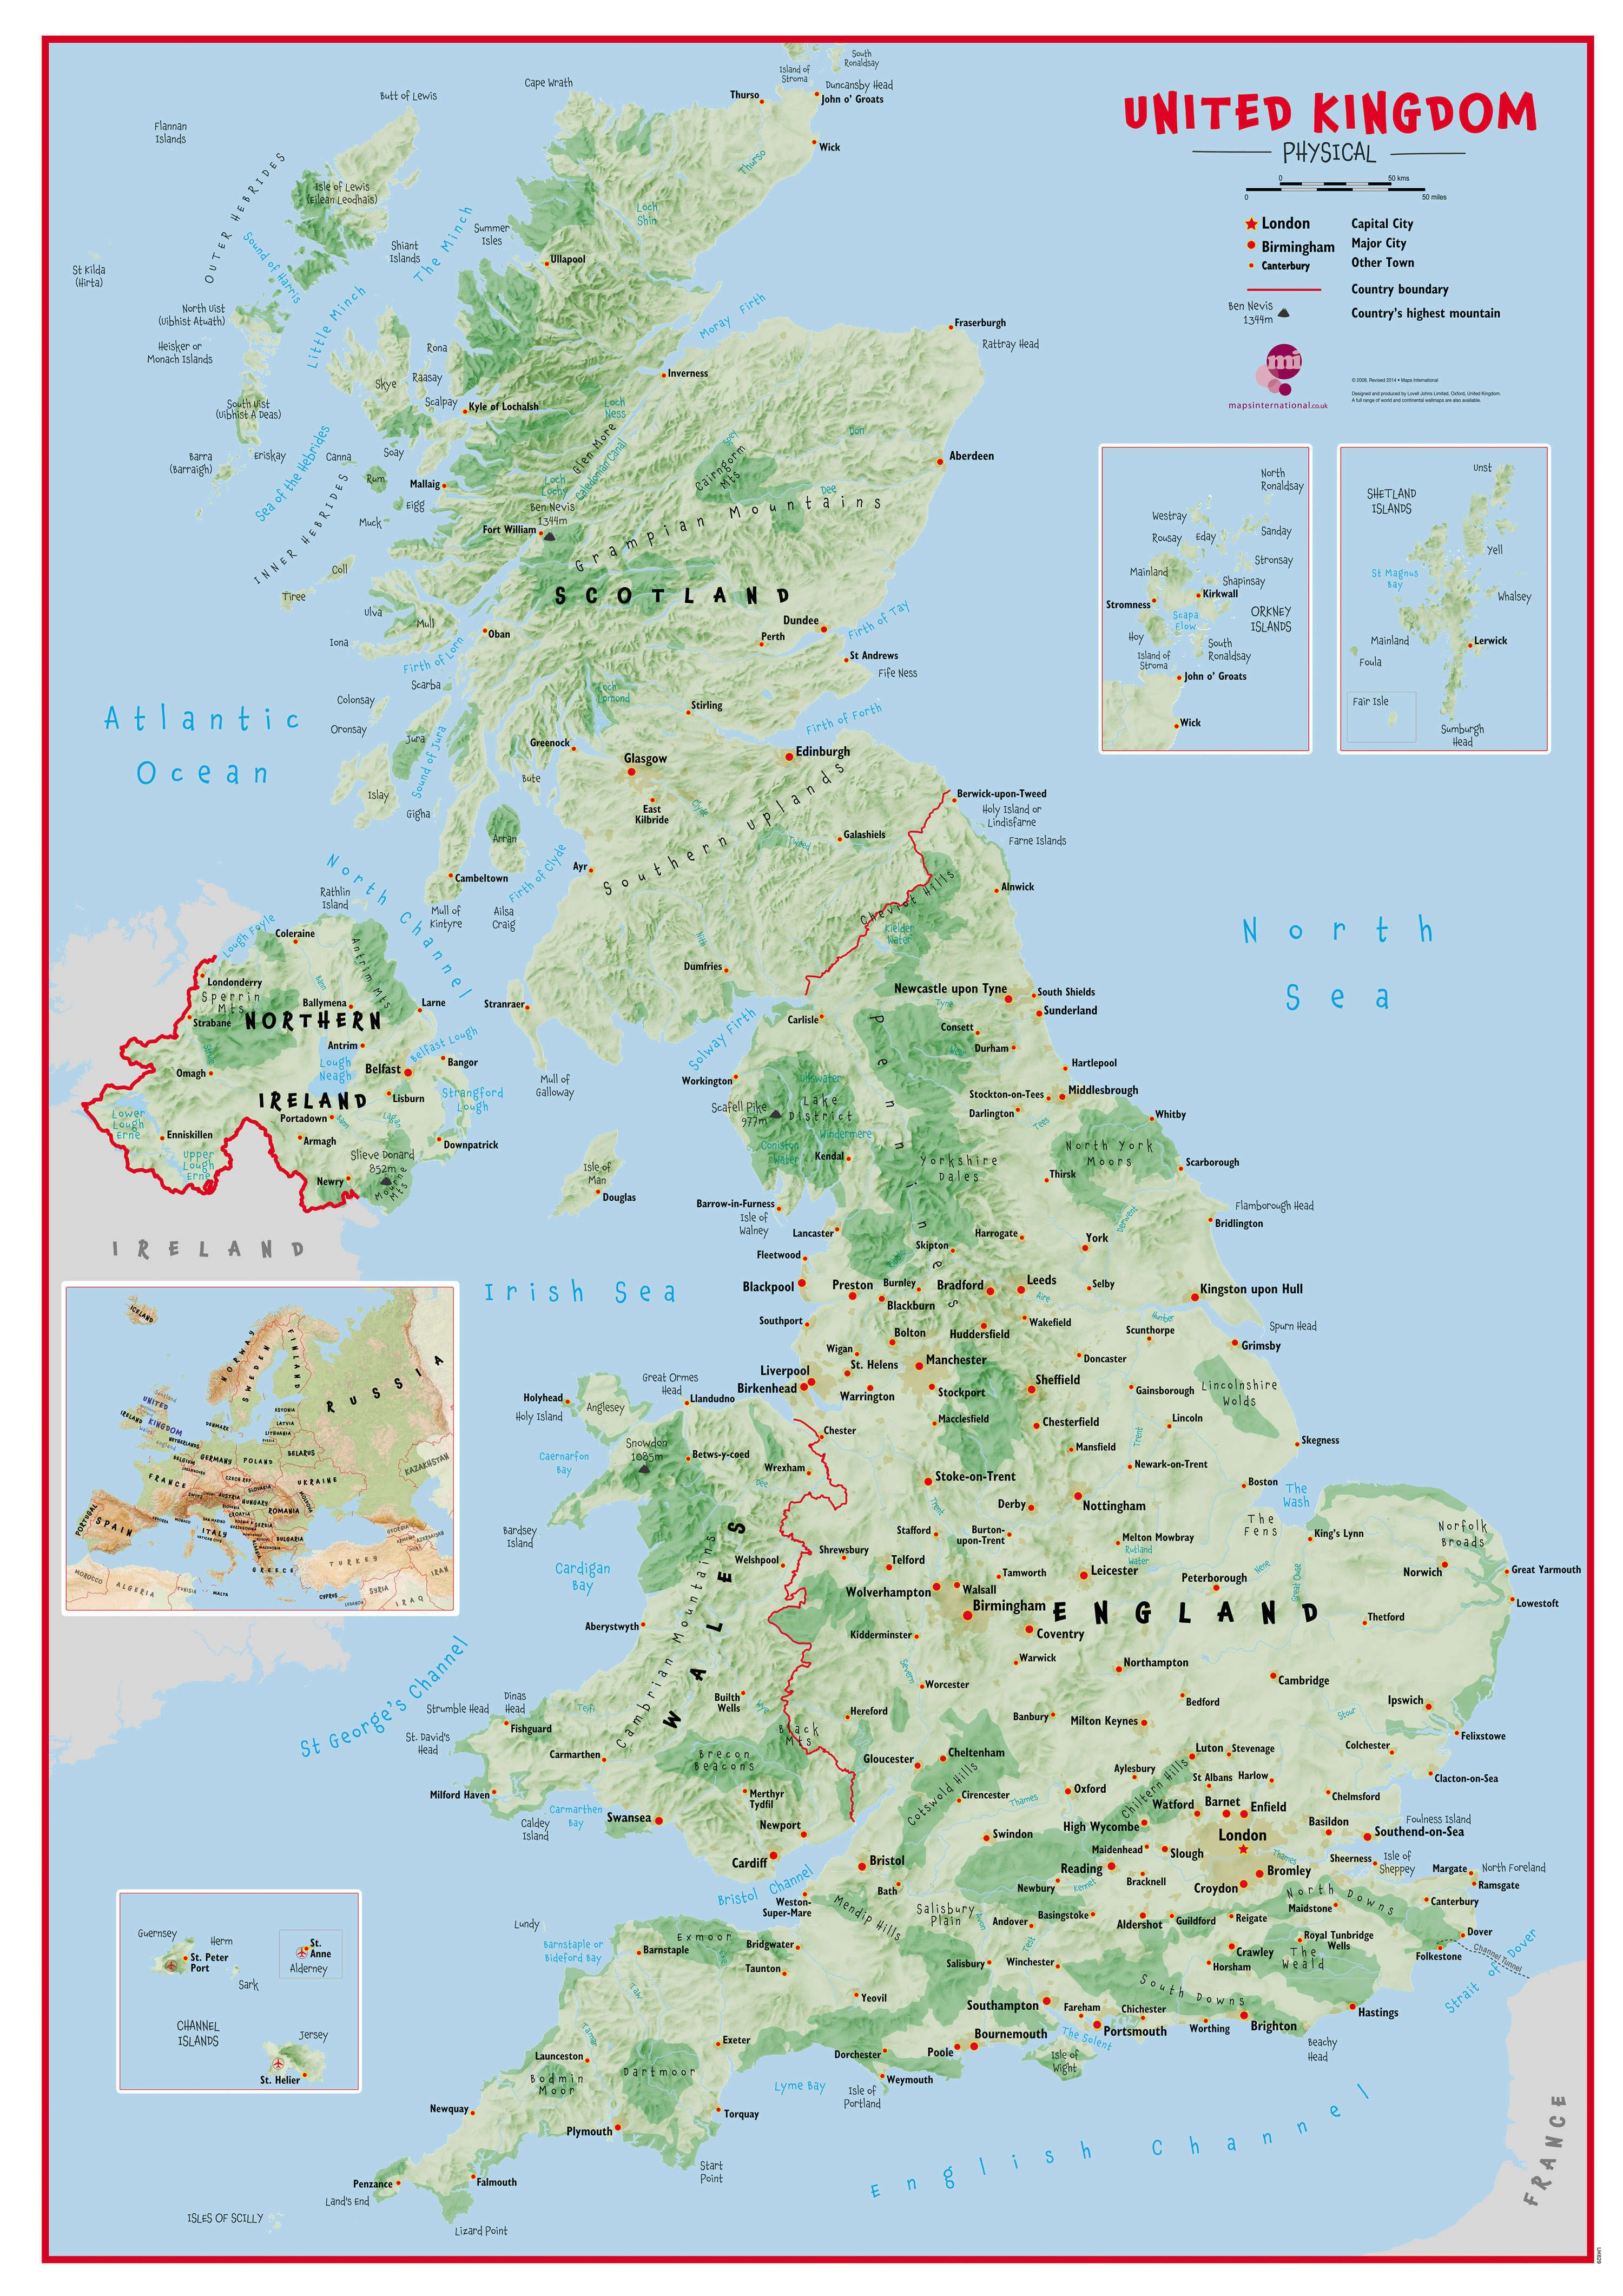 United Kingdom - Map of Cities in United Kingdom - MapQuest